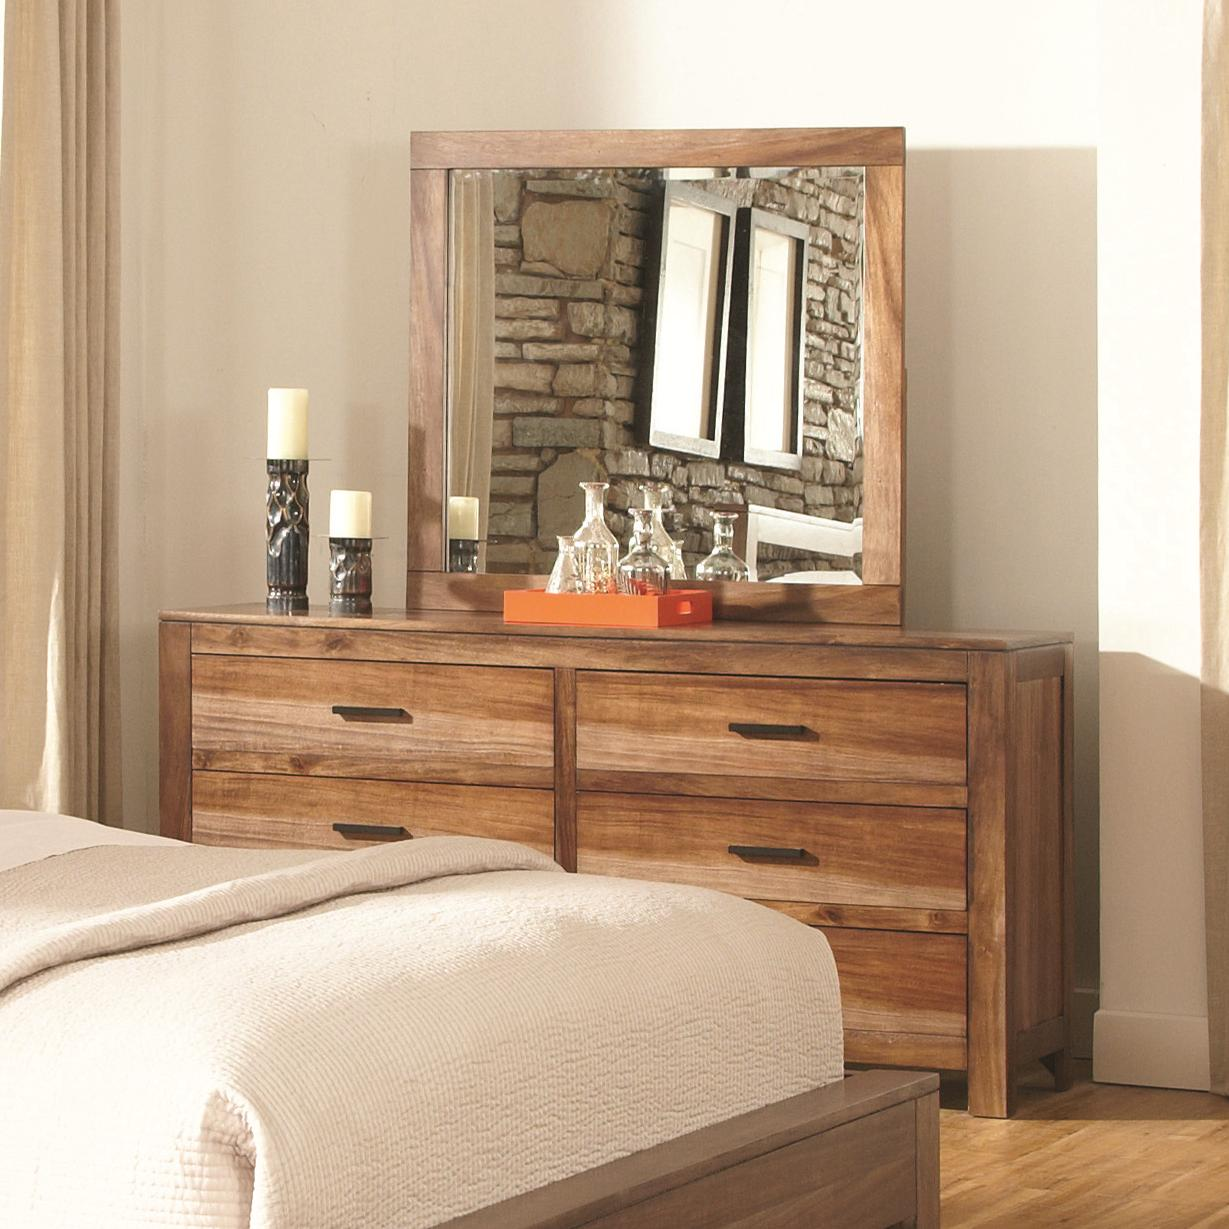 Coaster Peyton Dresser and Mirror Set - Item Number: 203653+4